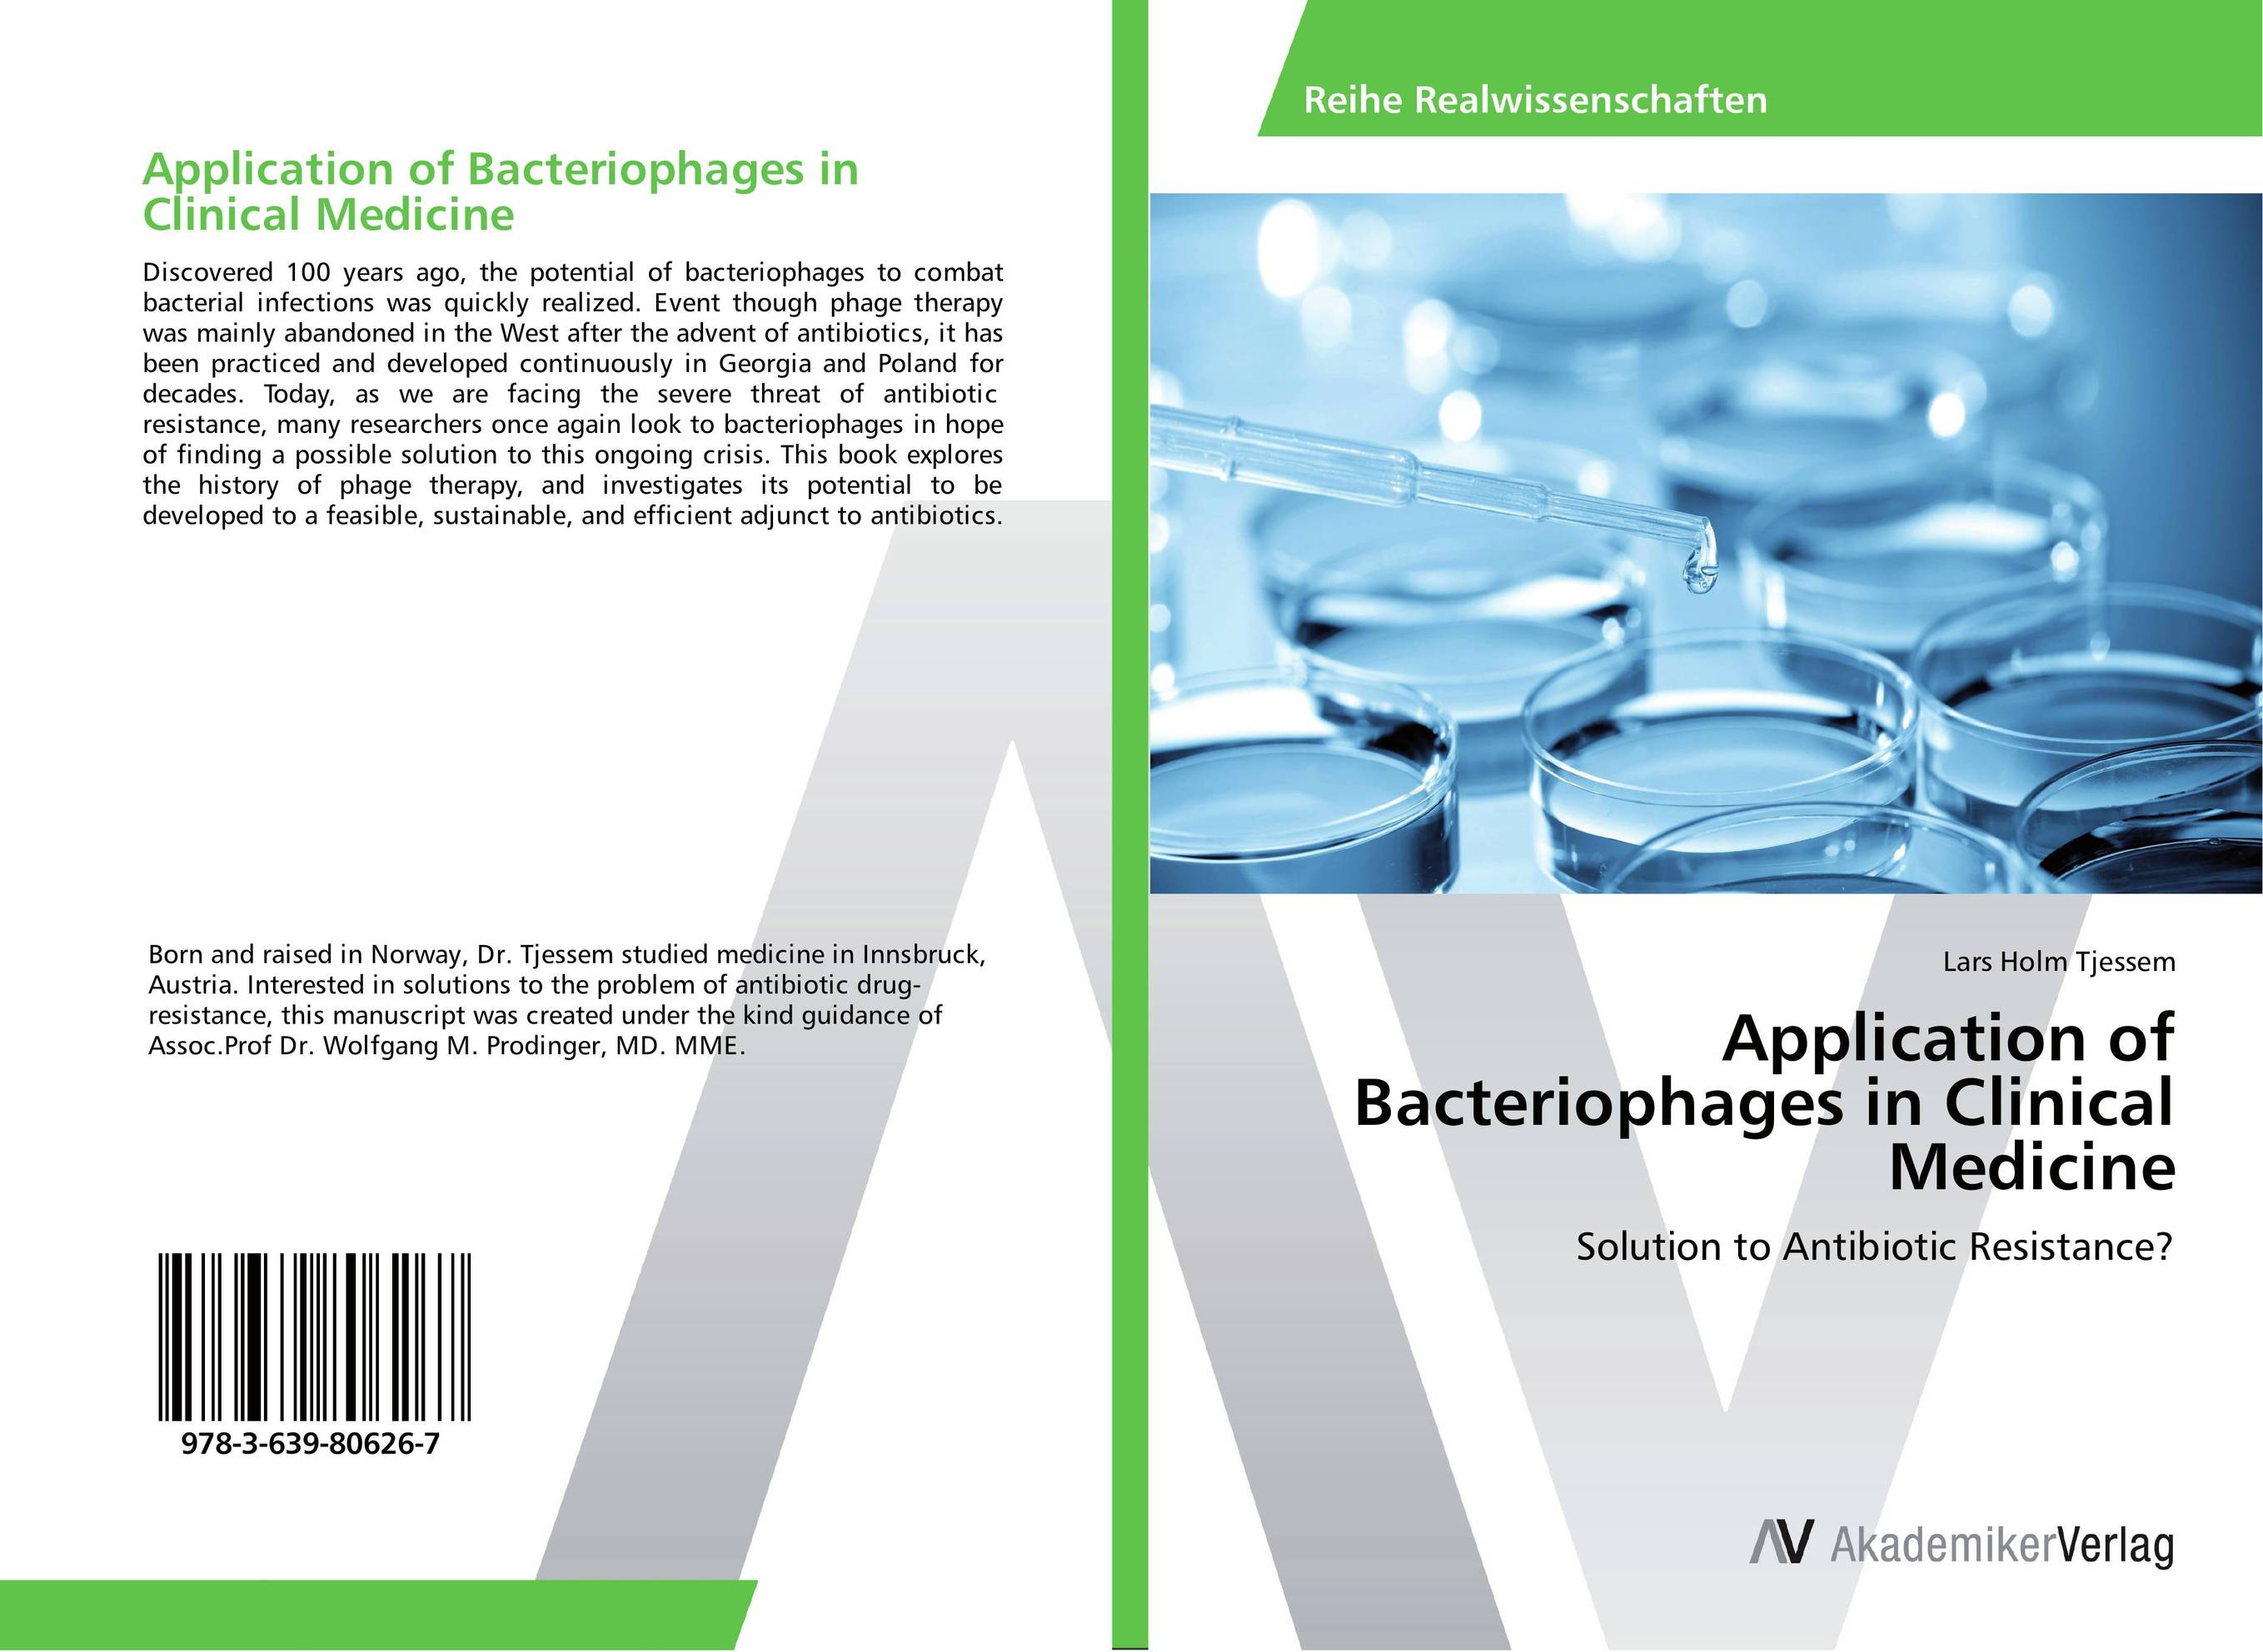 Application of Bacteriophages in Clinical Medicine bacterial resistance to antibiotics